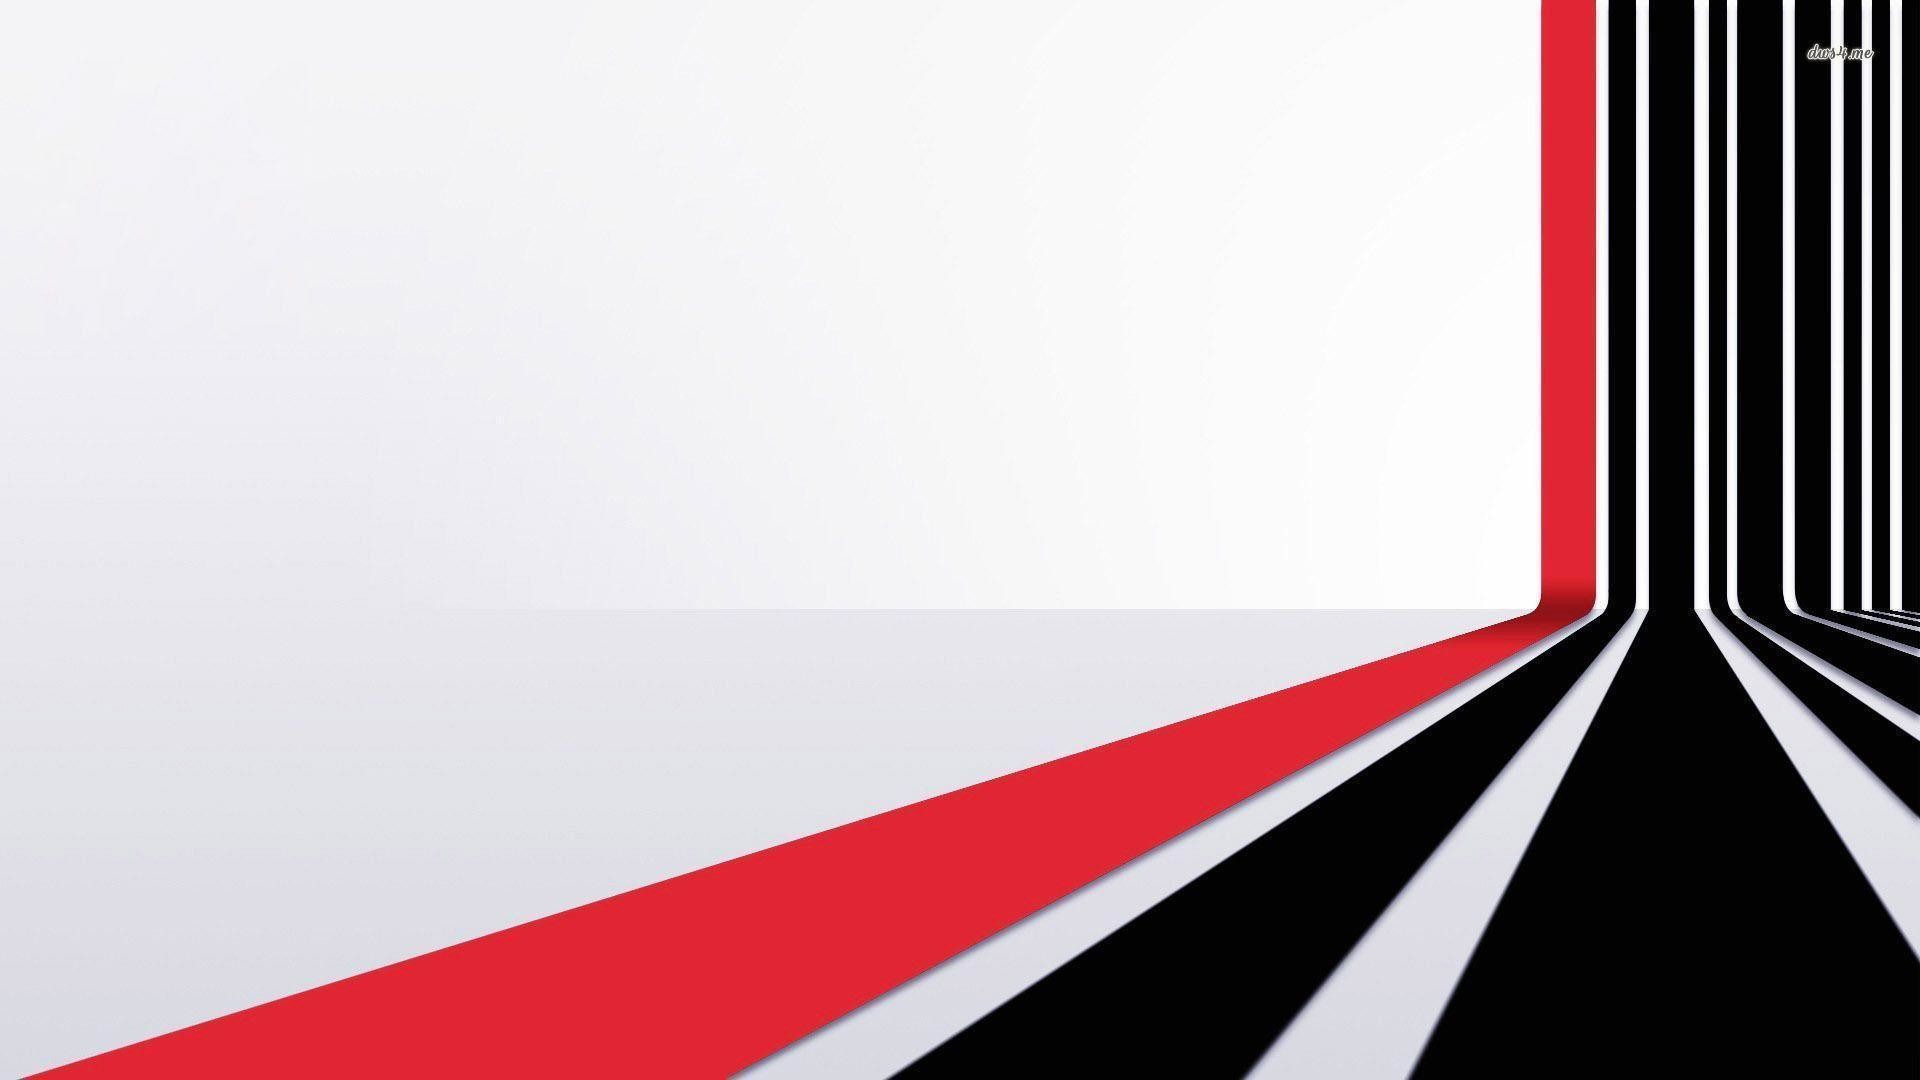 Black and Red Abstract High Definition HD Wallpaper – Beraplan.